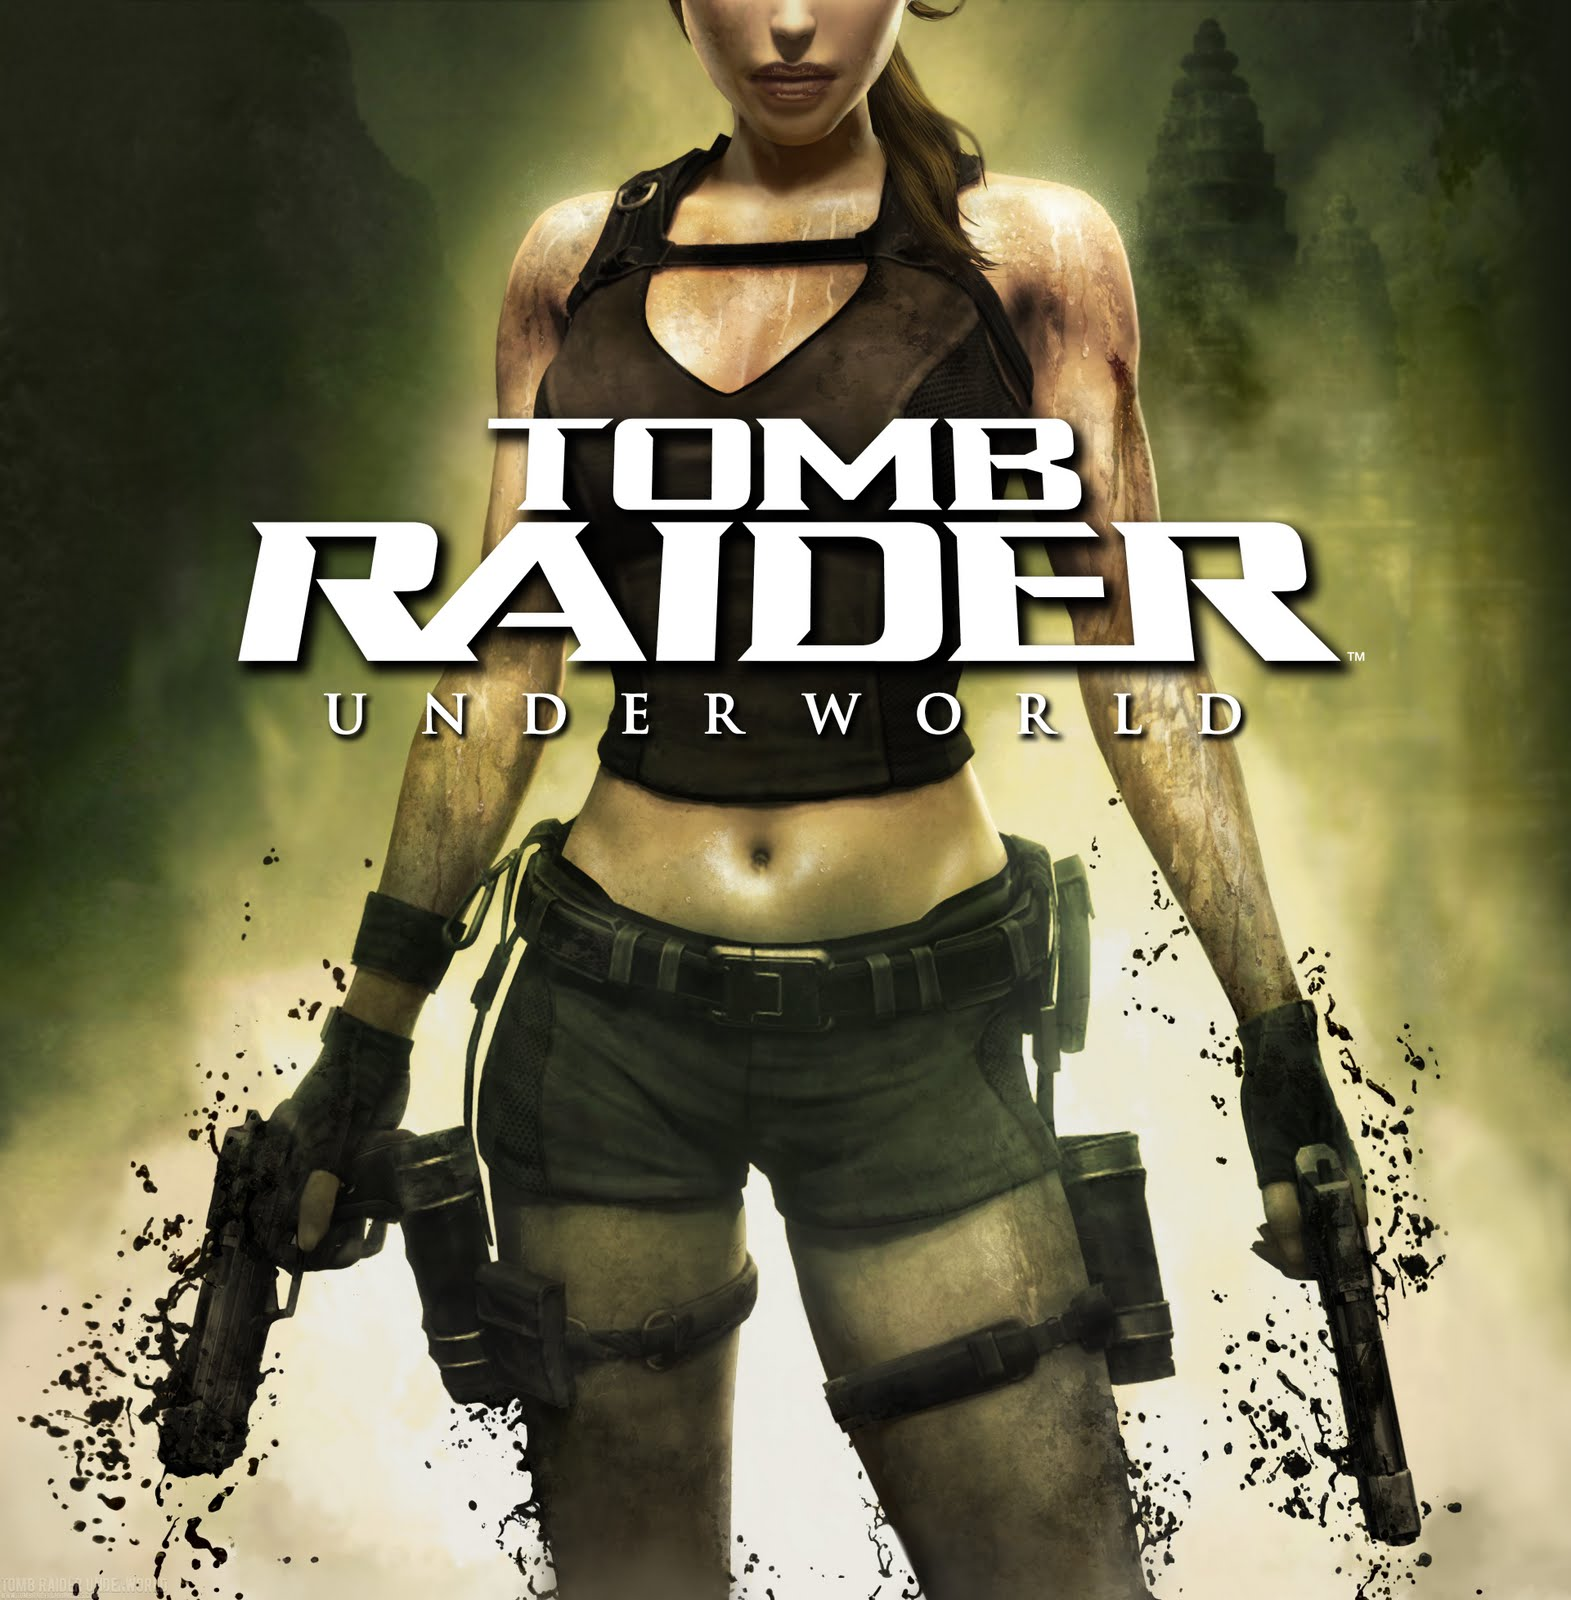 Tomb Raider Underworld HD desktop wallpaper  - tomb raider underworld wallpapers